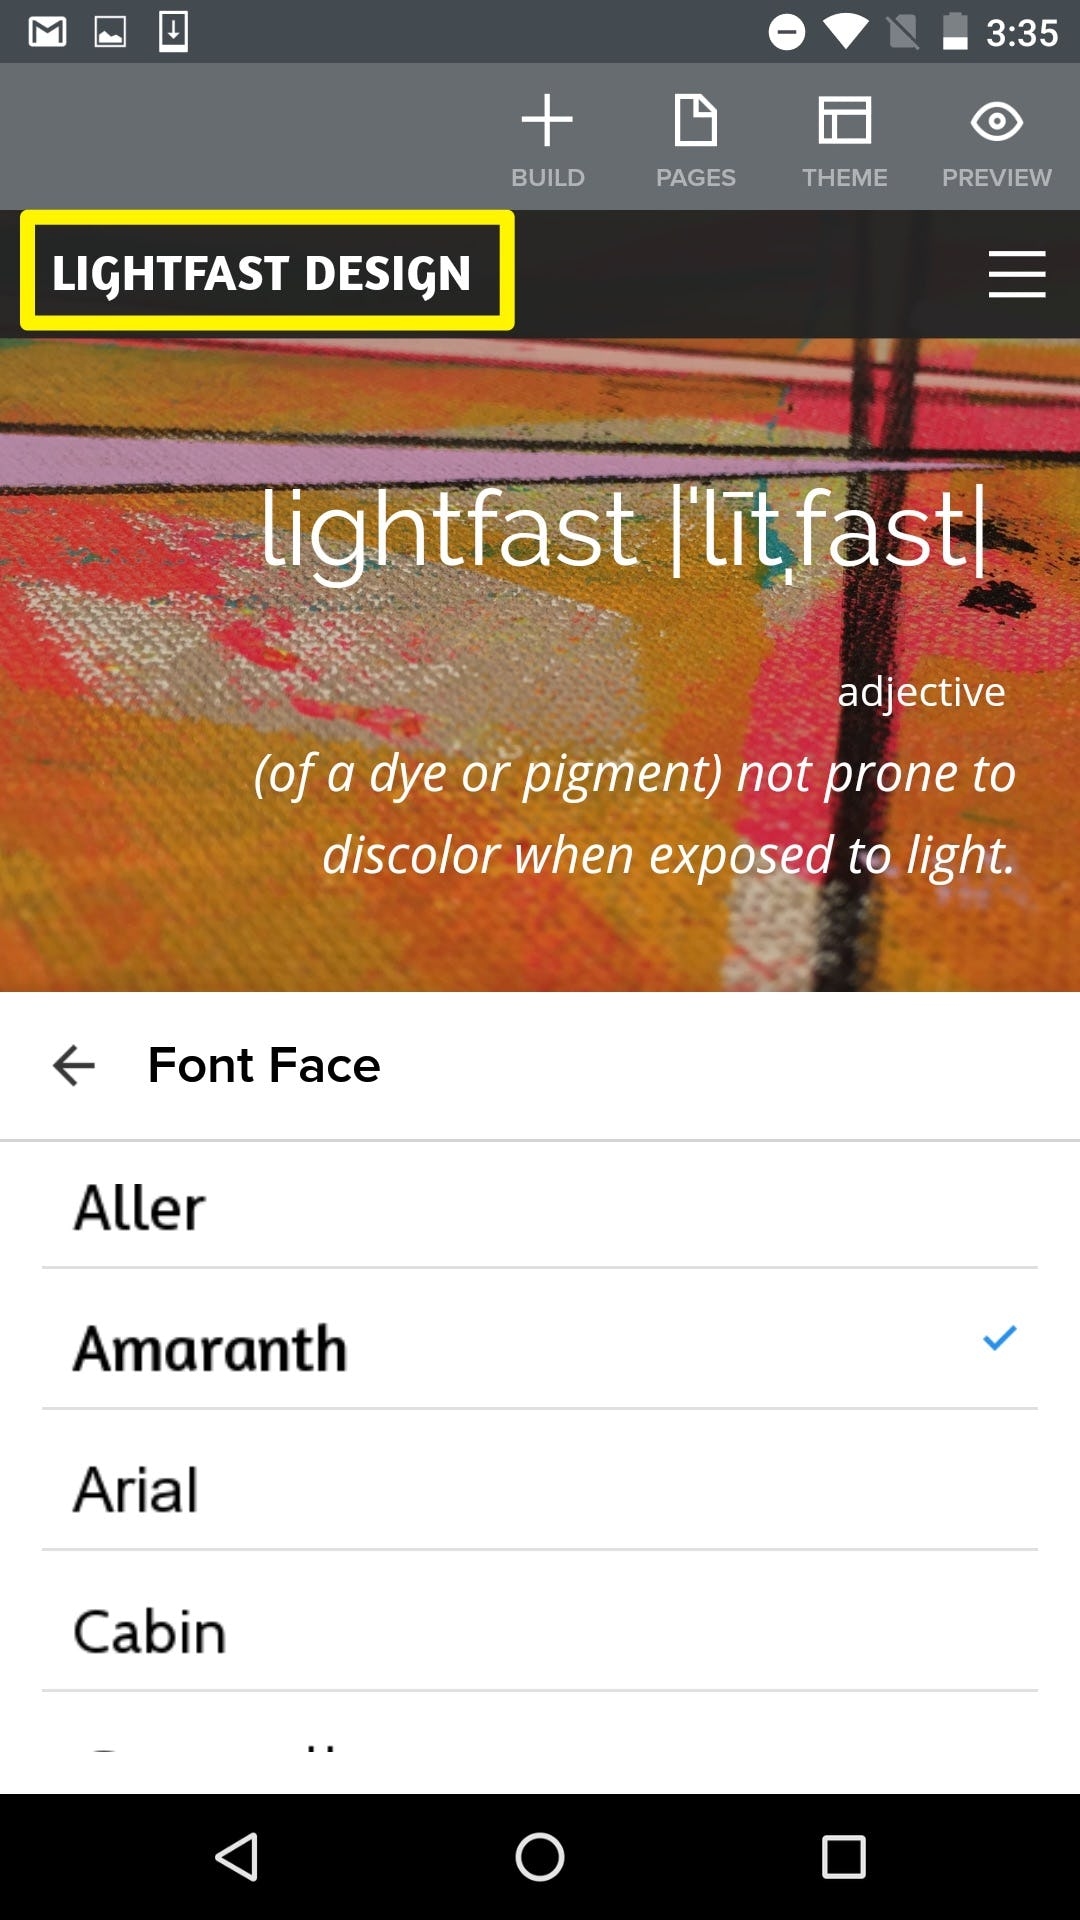 Mobile themes and fonts